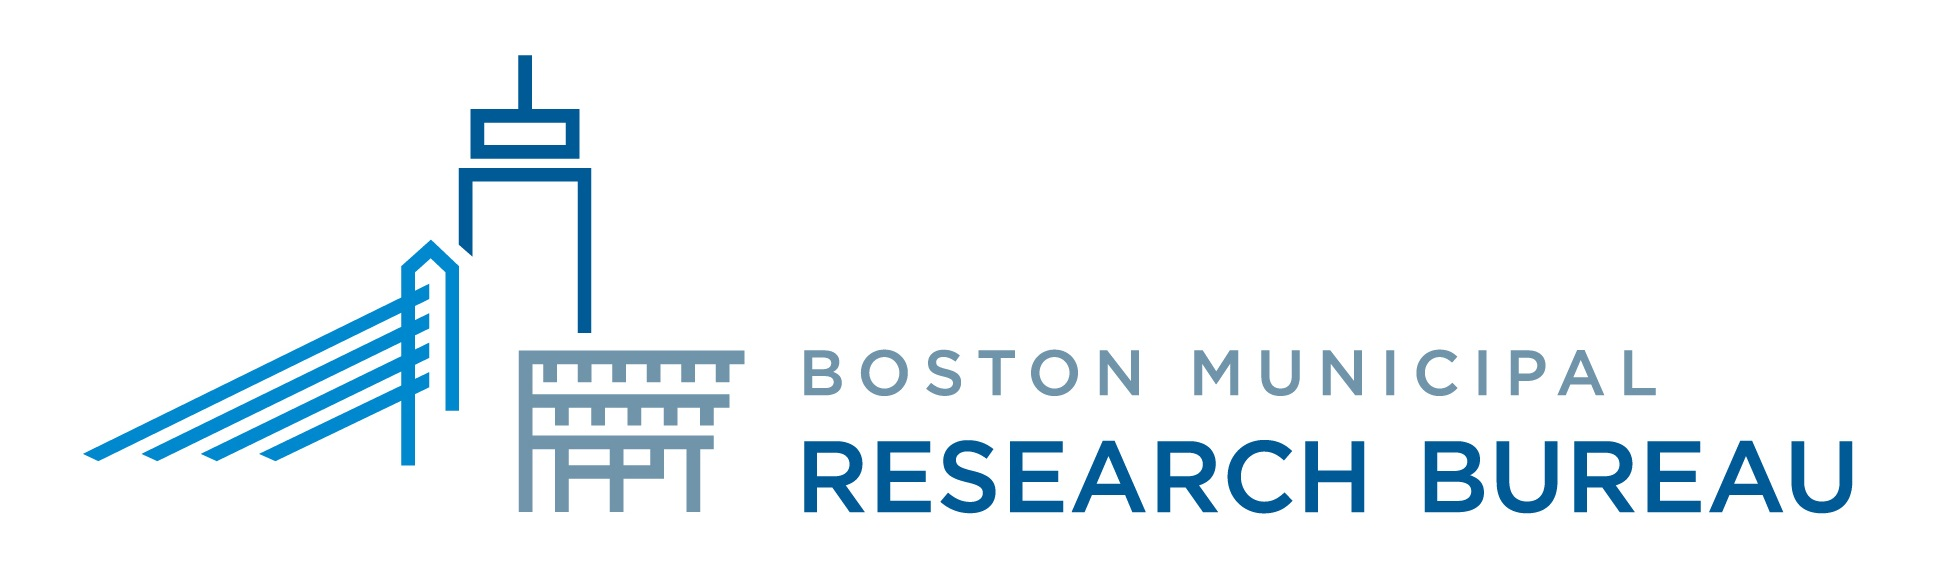 Boston Municipal Research Bureau